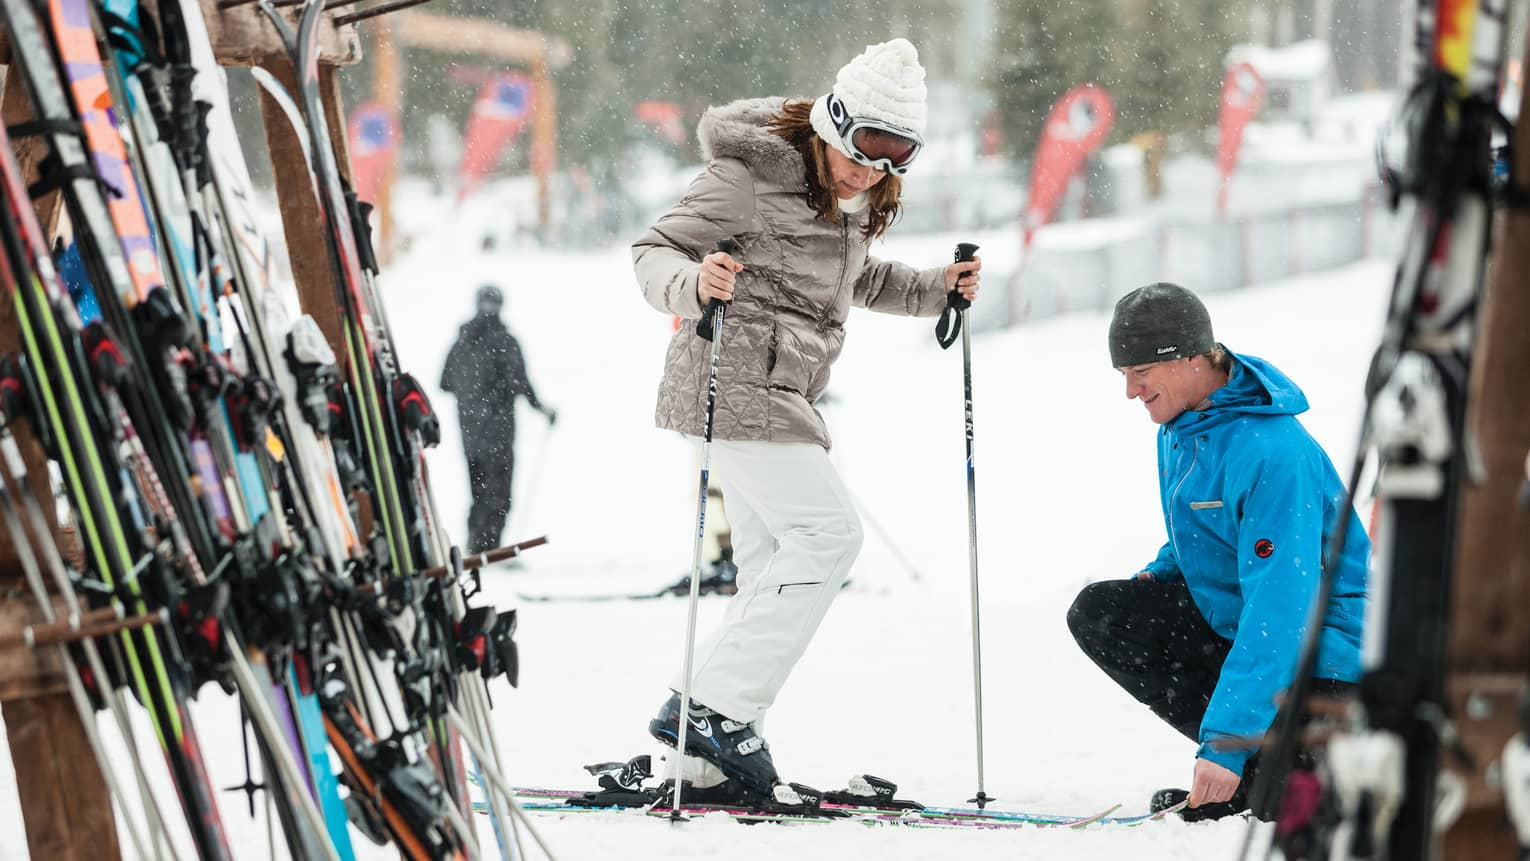 Ski concierge kneels down by woman trying on skis in front of rack